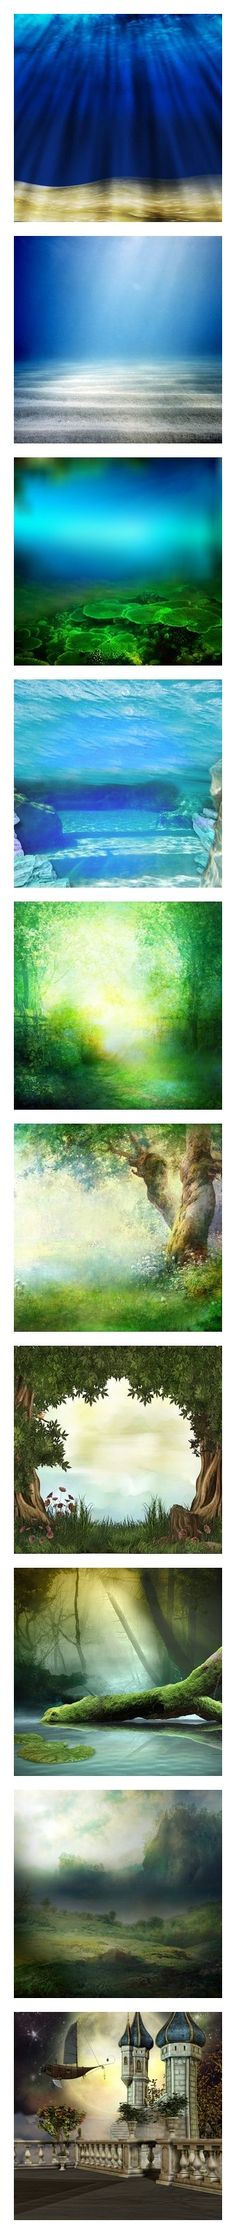 """""""Backgrounds"""" by saphirange ❤ liked on Polyvore featuring backgrounds, water, ocean, underwater, filler, landscape, scenery, art, pictures and green"""